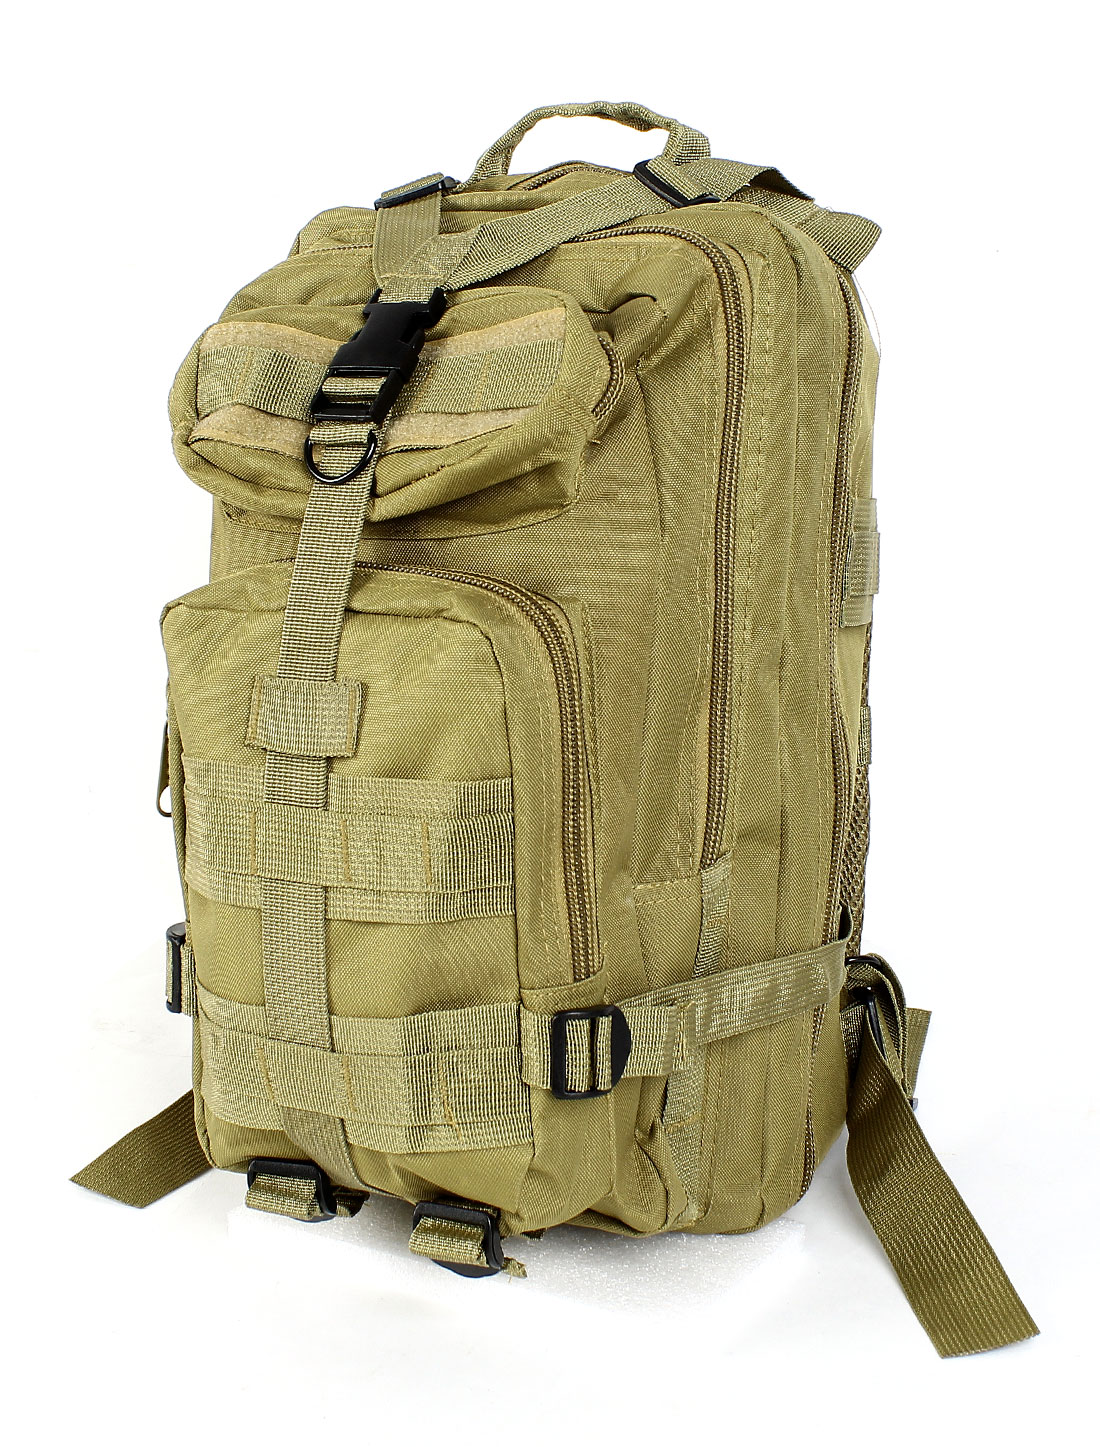 Unisex Military Tactical Rucksack Oxford Cloth Bag Camping Backpack Army Green